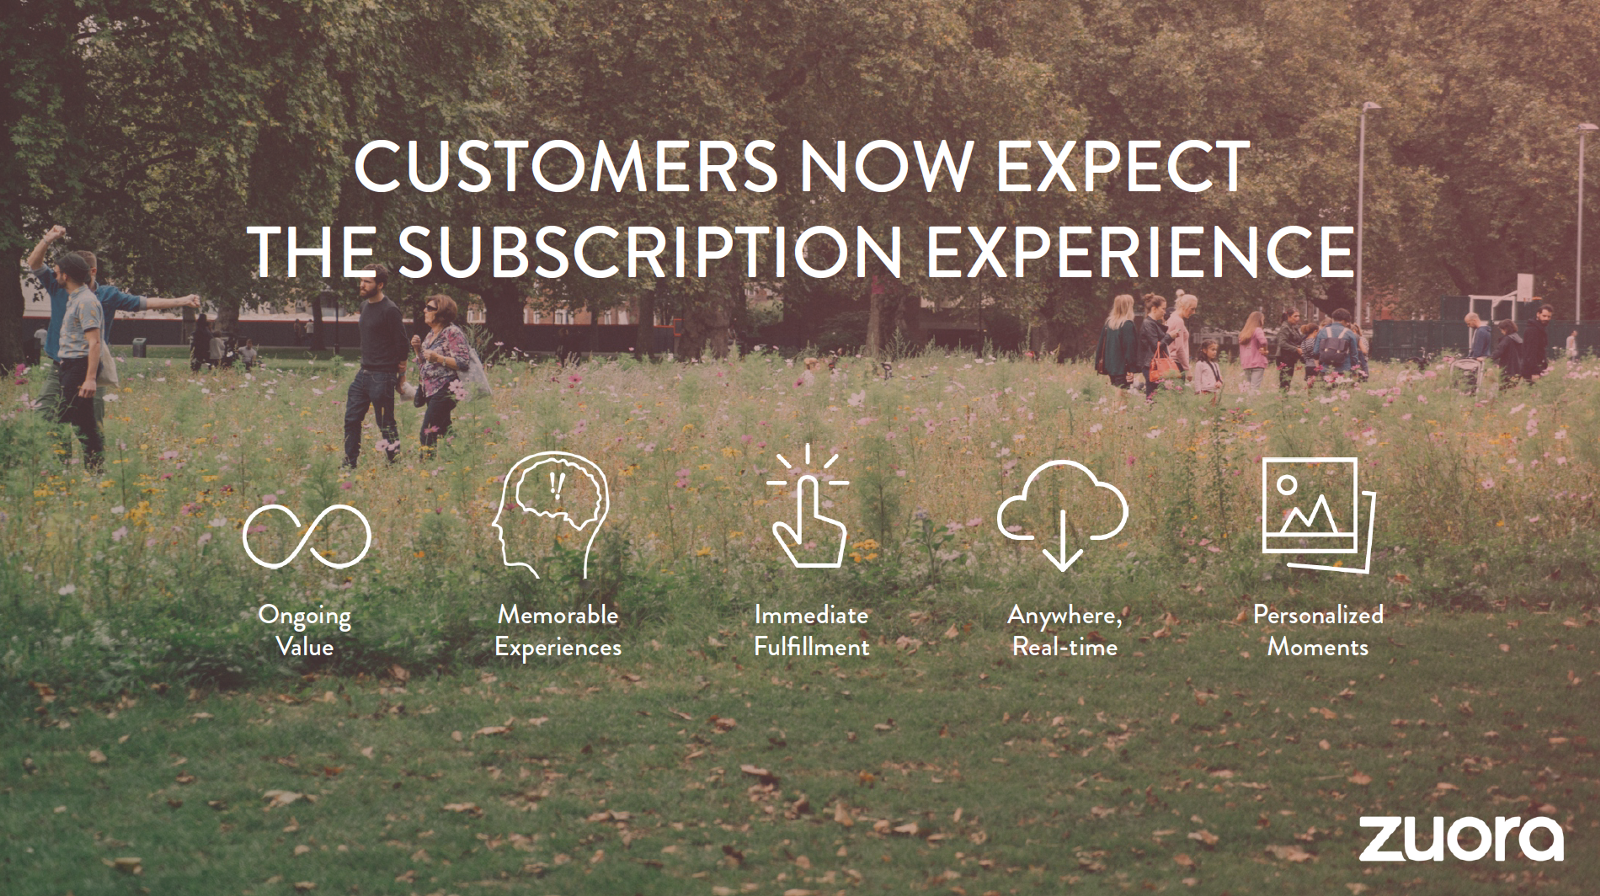 Customers now expect the subscription experience - Zuora sales deck